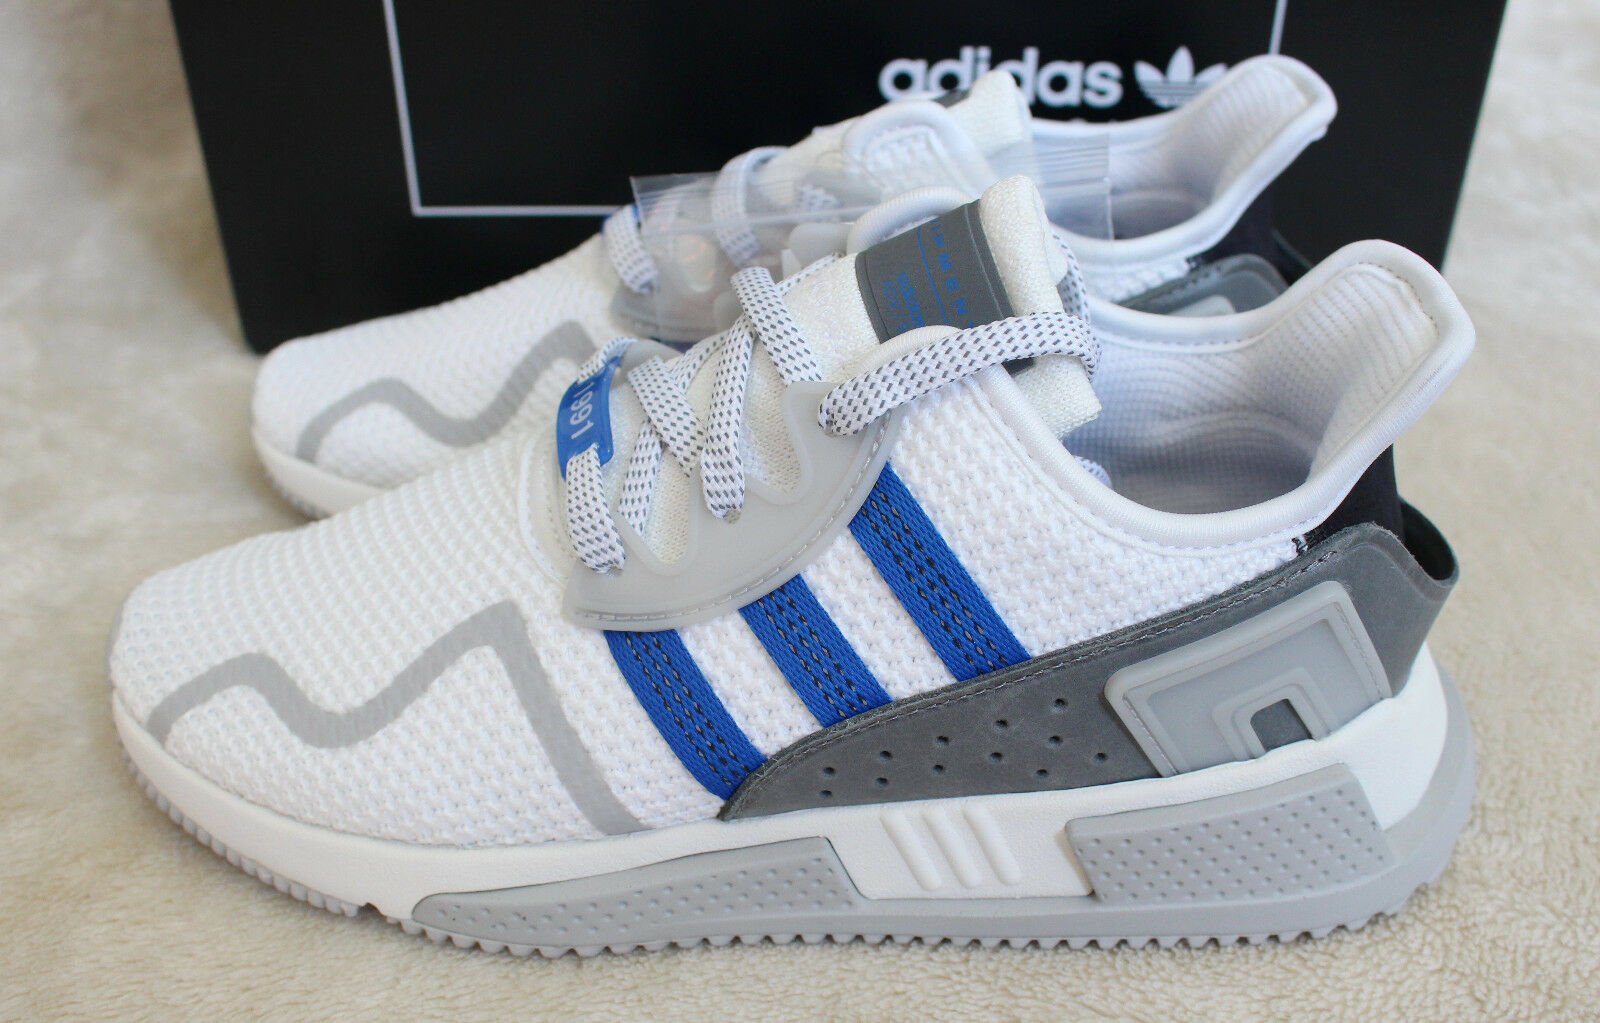 New Adidas EQT Cushion ADV 1991 Europe Exclusive blanc Bleu9 US 9.5 Free Bag